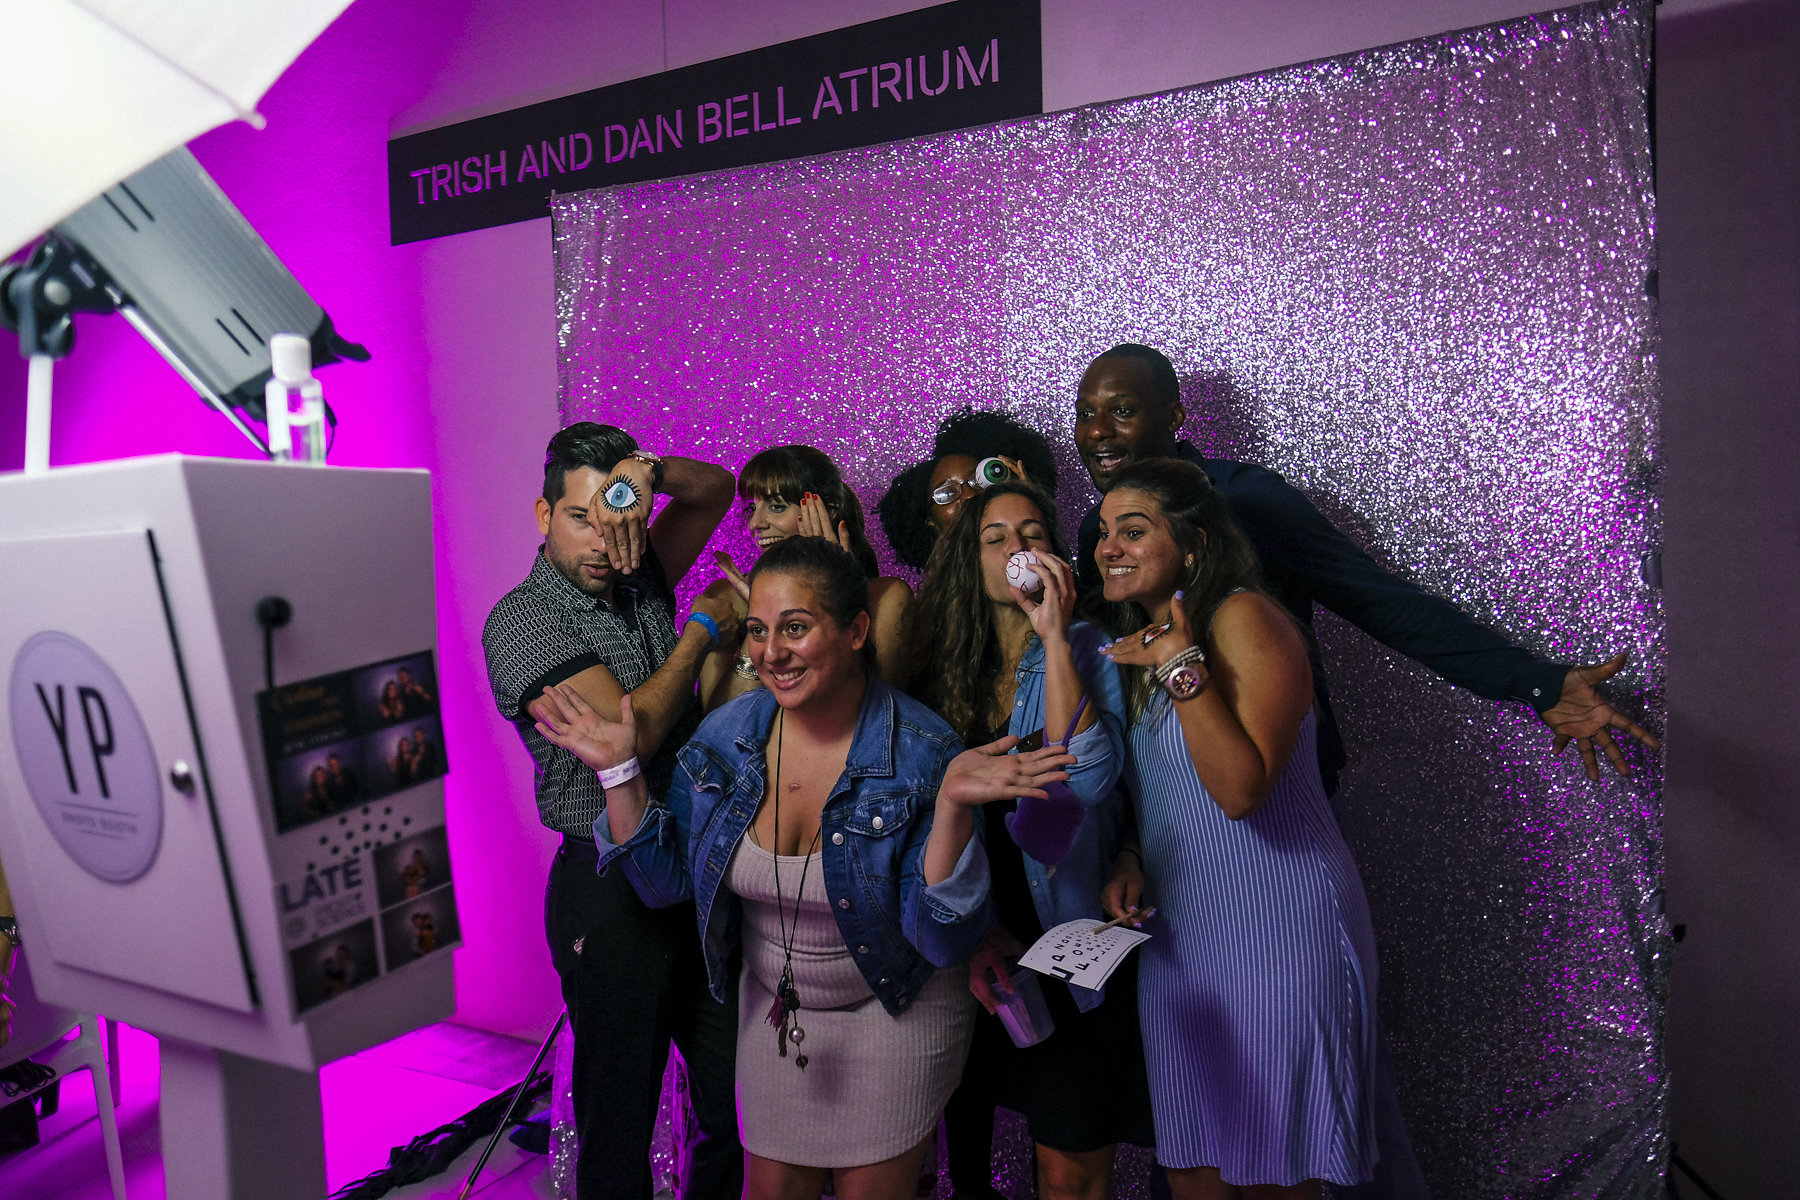 Young adults posing for a photo in a photo booth